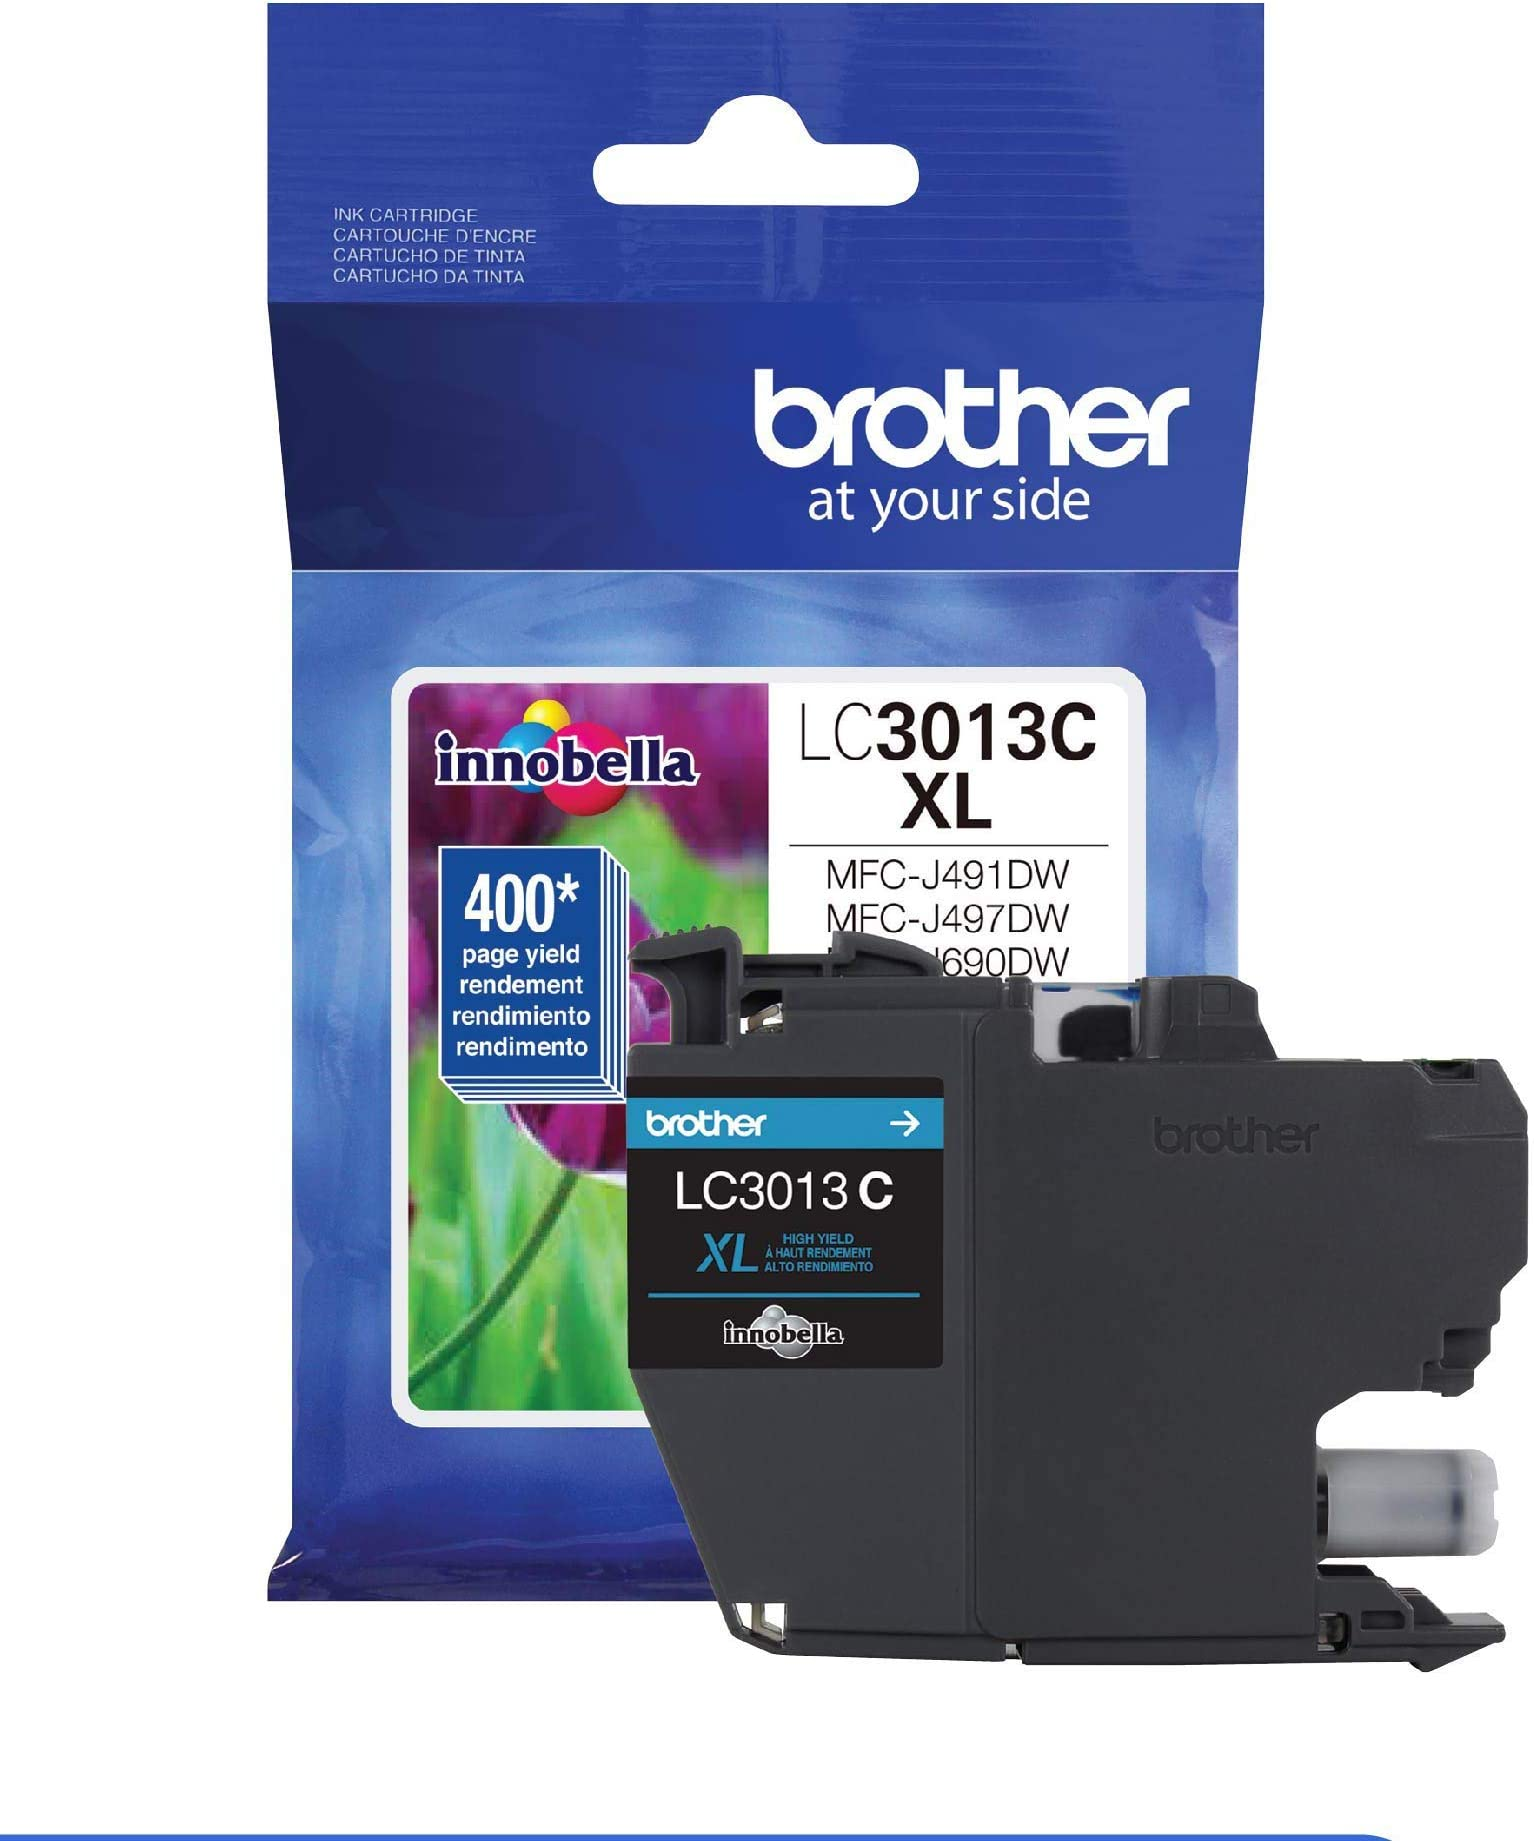 Brother Printer LC3013C Single Pack High Cartridge Yield Up To 400 Pages LC3013 Ink Cyan